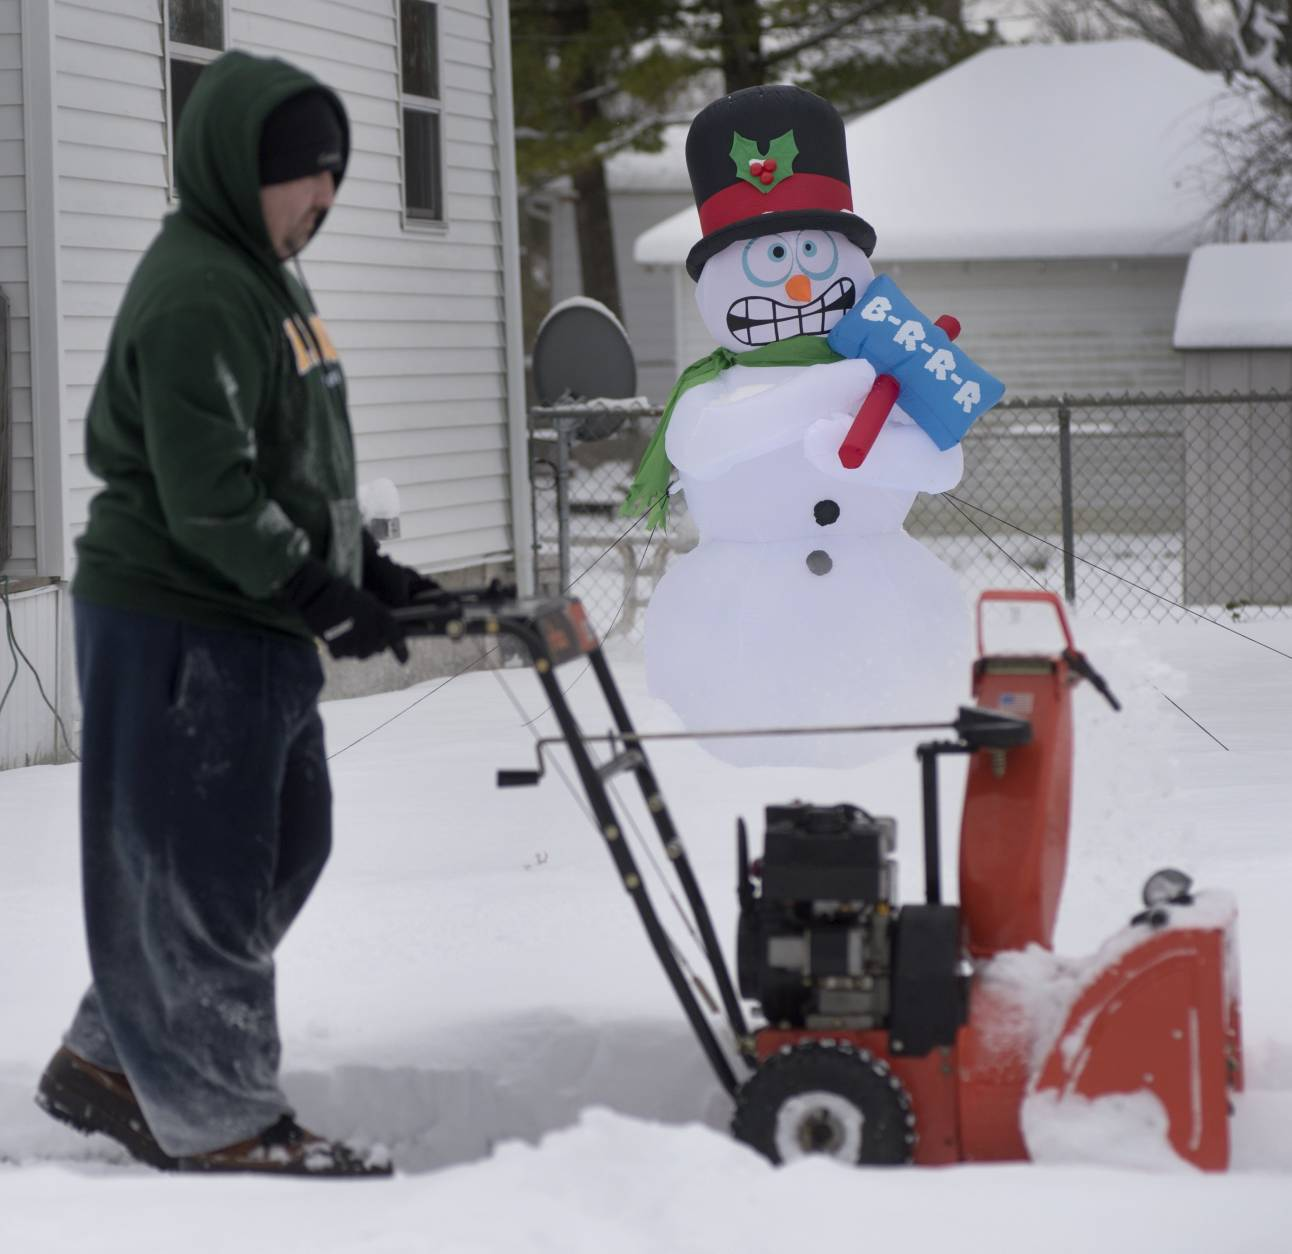 Dave Snell clears snow from the sidewalk in front of his Saginaw, Mich., home on Monday morning, Dec. 12, 2016. According to the National Weather Service, almost nine inches of snow fell on Saginaw on Sunday through Monday morning. All area schools are closed for the day. (Jeff Schrier/The Saginaw News via AP)